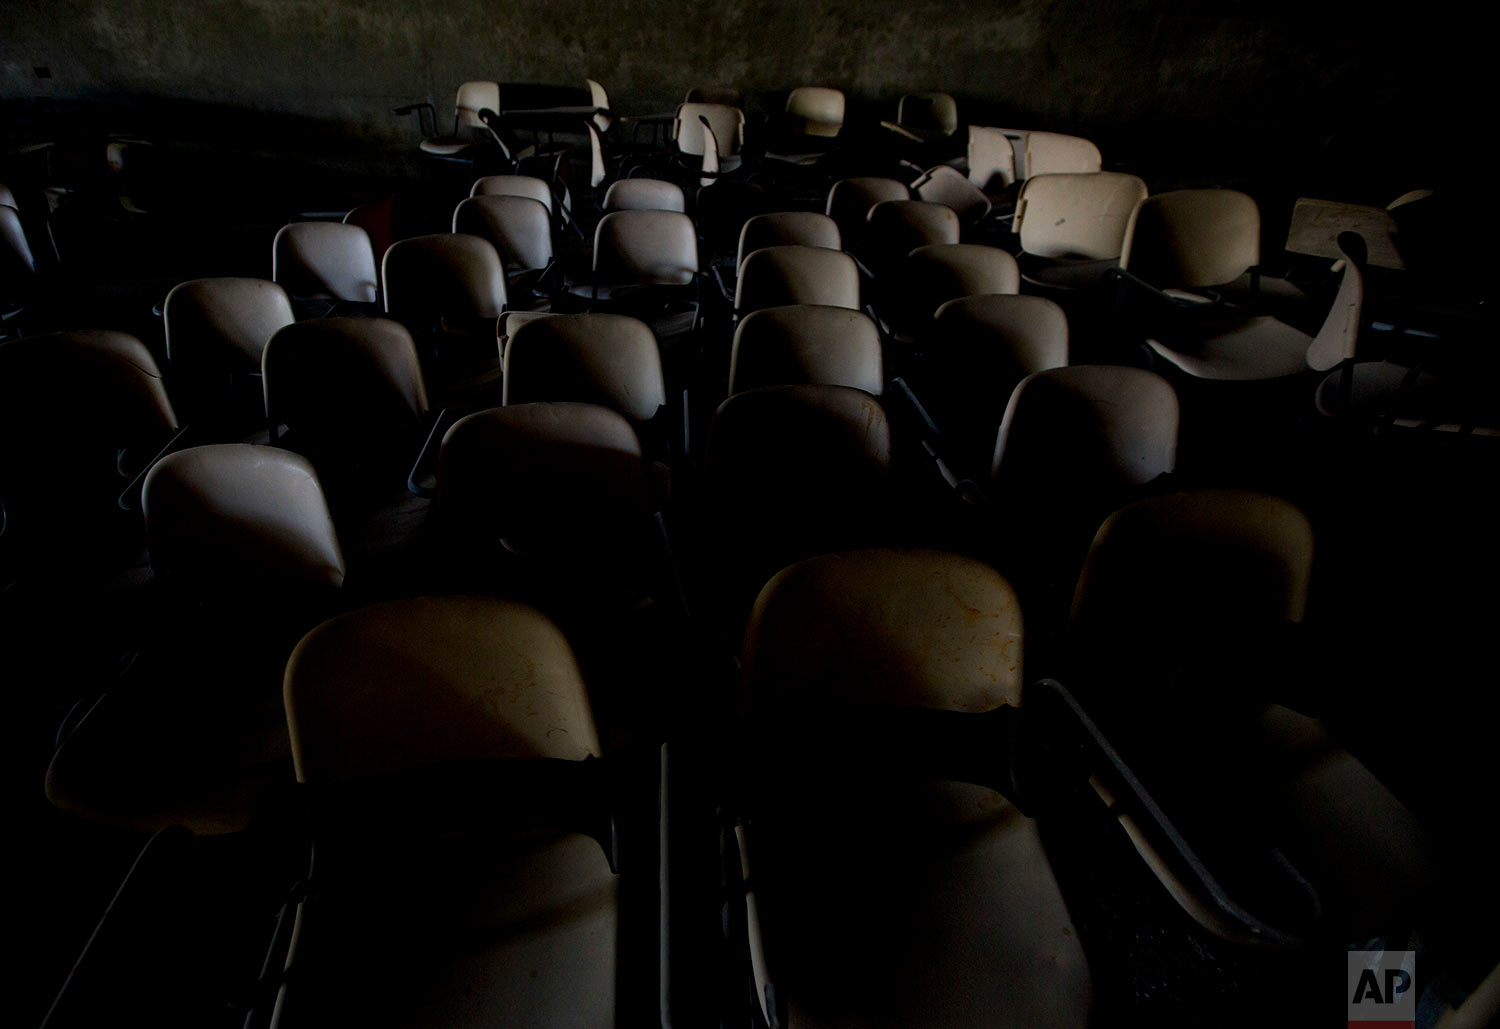 Stacked delegates' chairs are seen in an underground garage of what was to be a Palestinian parliament in Abu Dis, West Bank on  June 24, 2018. This decrepit building, built during the heyday of Israeli-Palestinian peace talks in the 1990s, was meant to serve the Palestinian parliament. Today, it is a grim reminder of dashed Mideast peace hopes and what might have been. (AP Photo/Dusan Vranic)